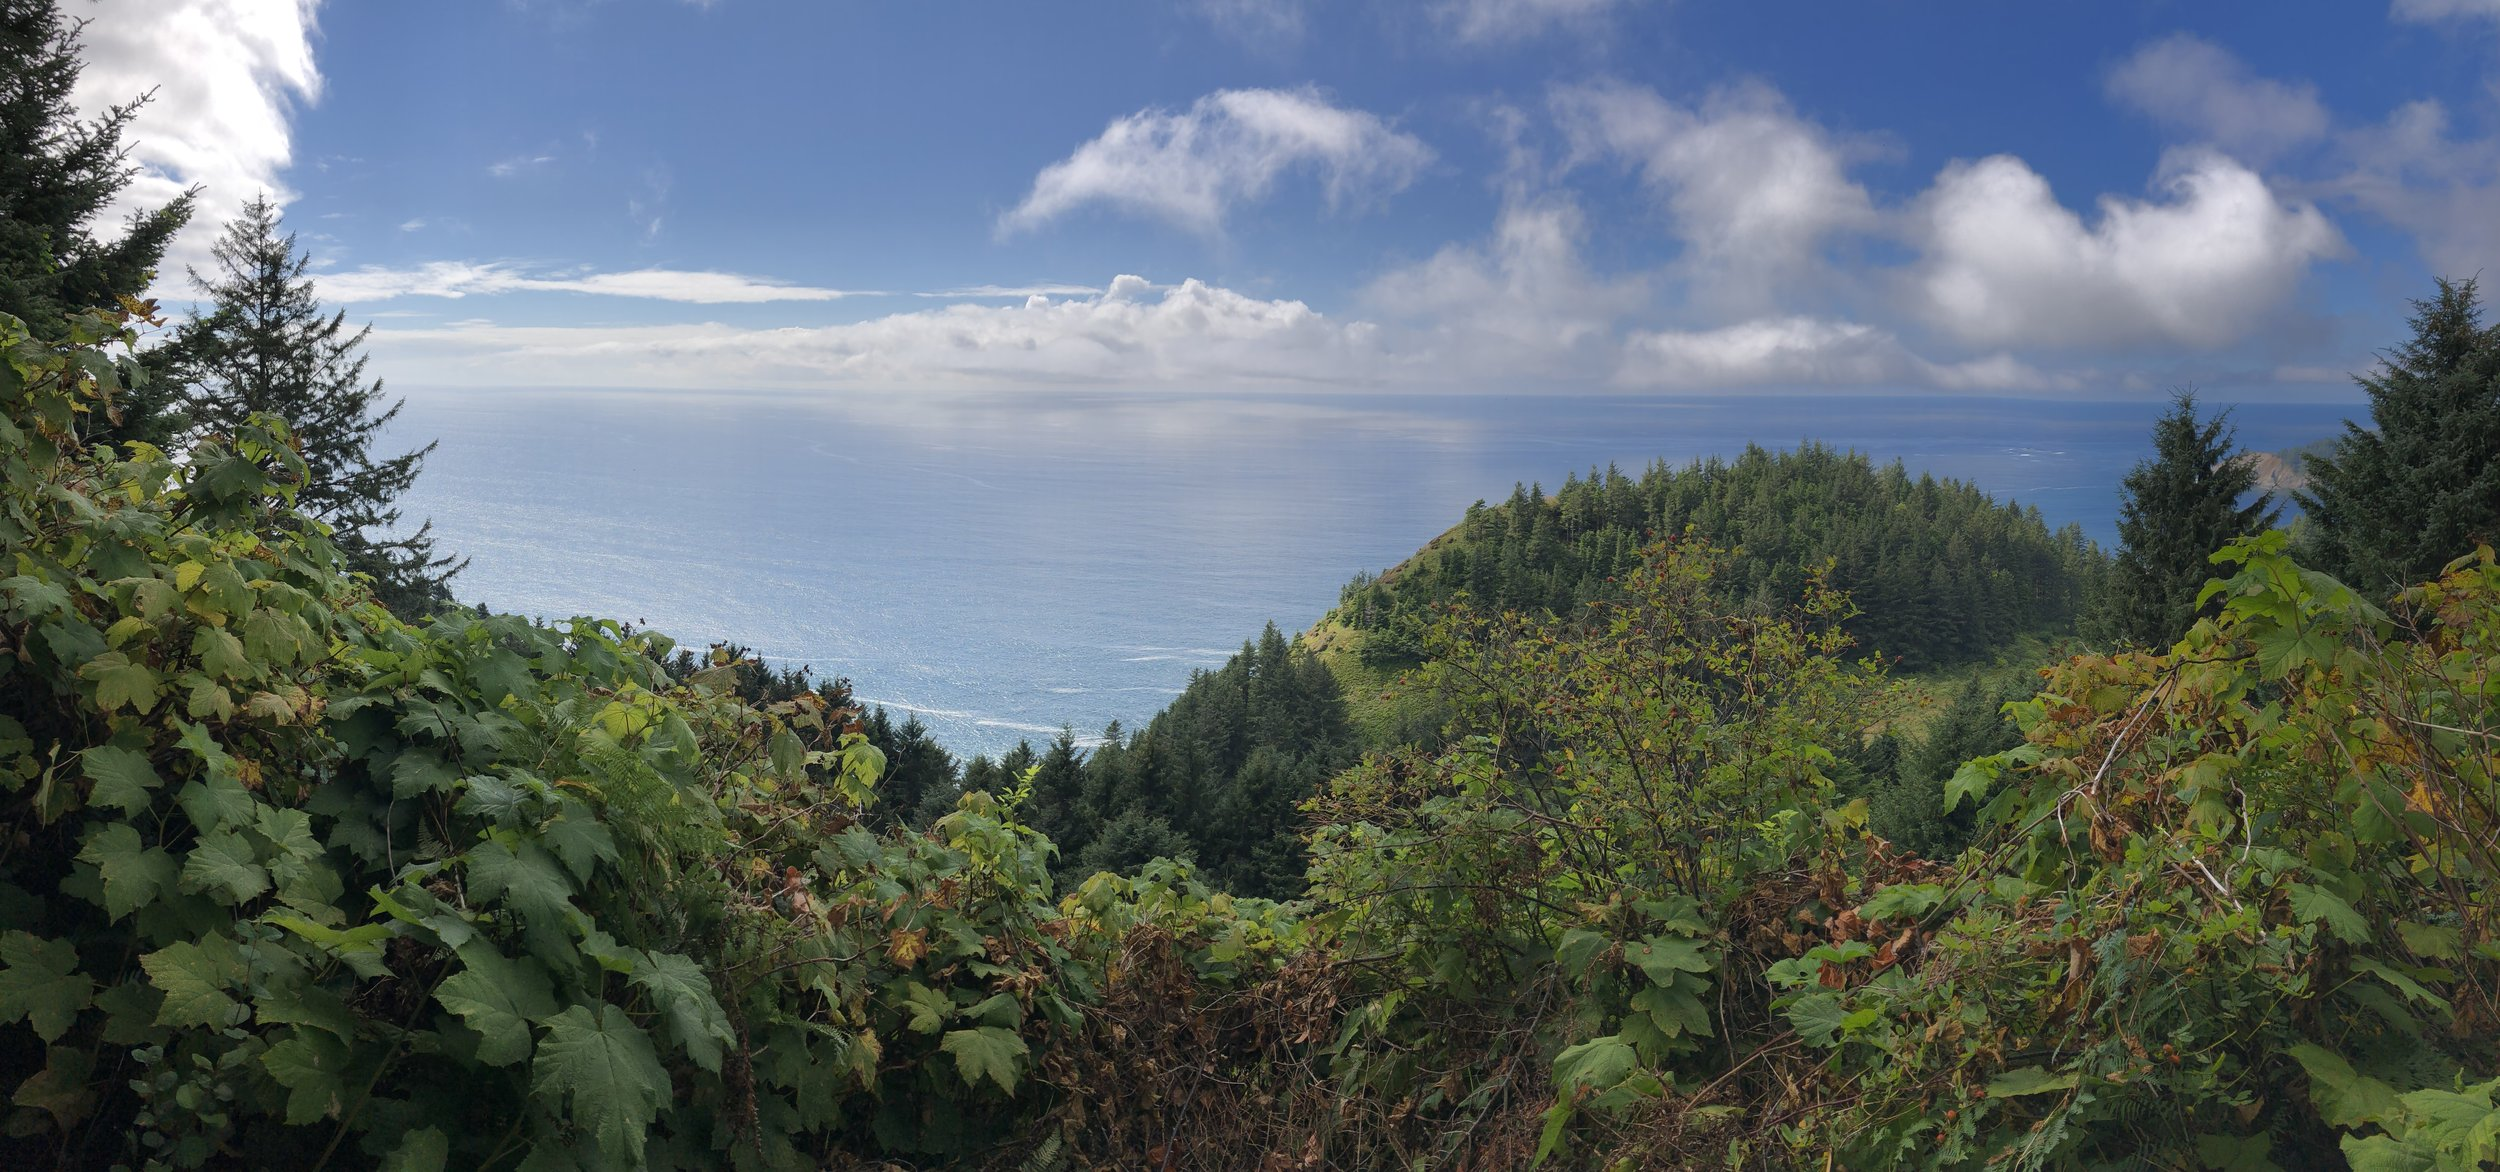 Ocean view just above US 101.